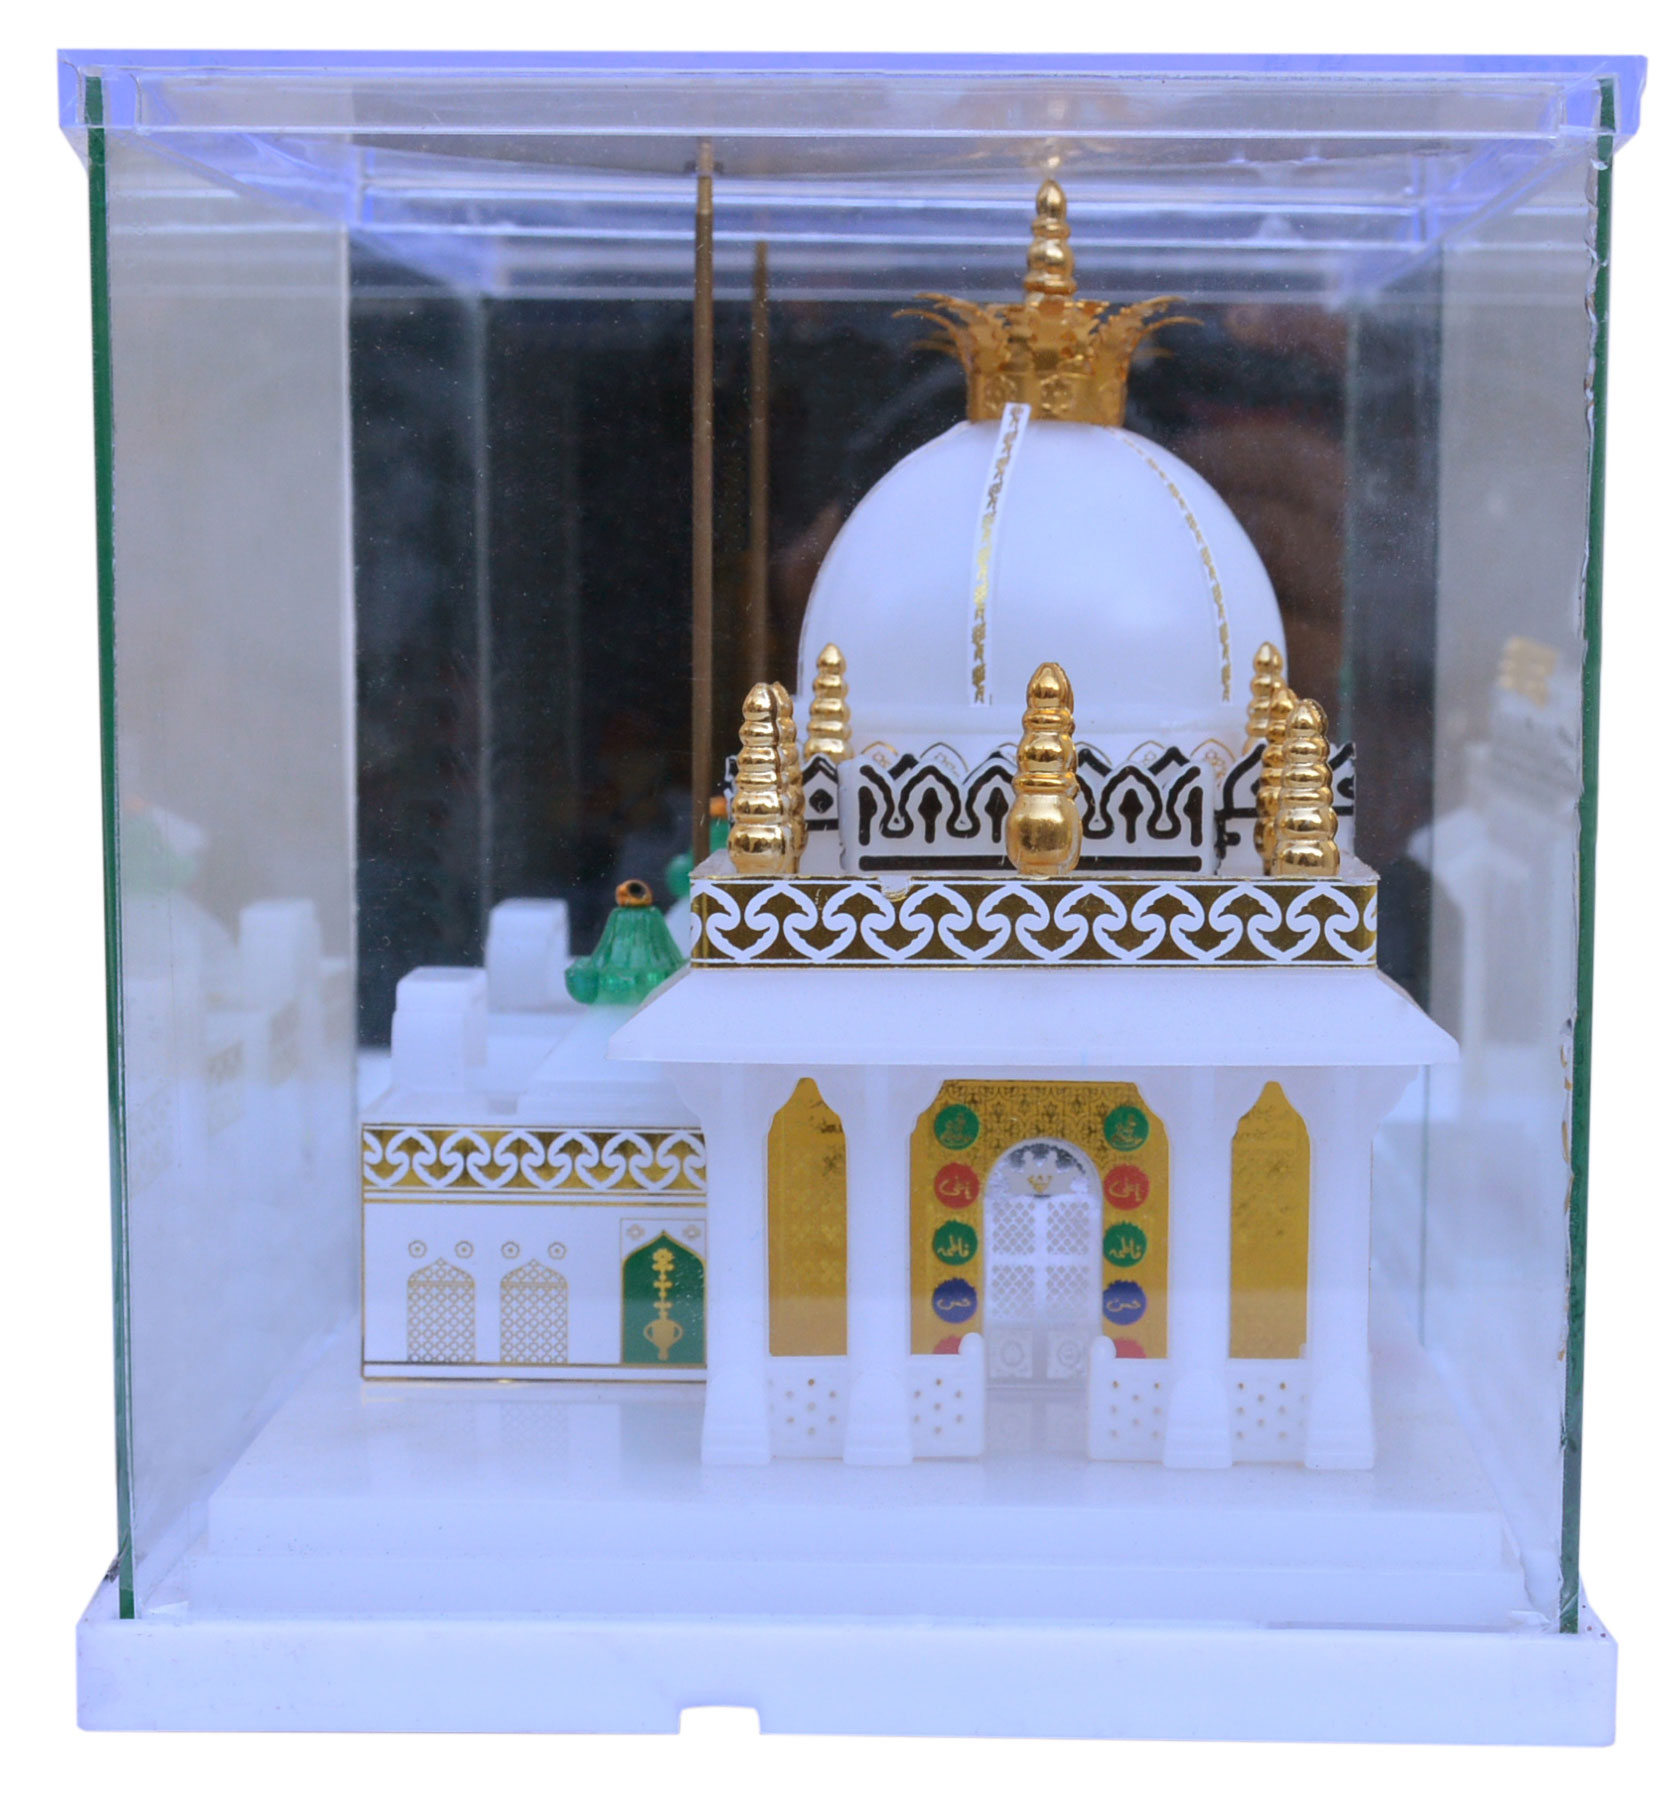 Ajmer sharif dargah replica in light box khwajadarbar ajmer sharif dargah replica in light box thecheapjerseys Image collections